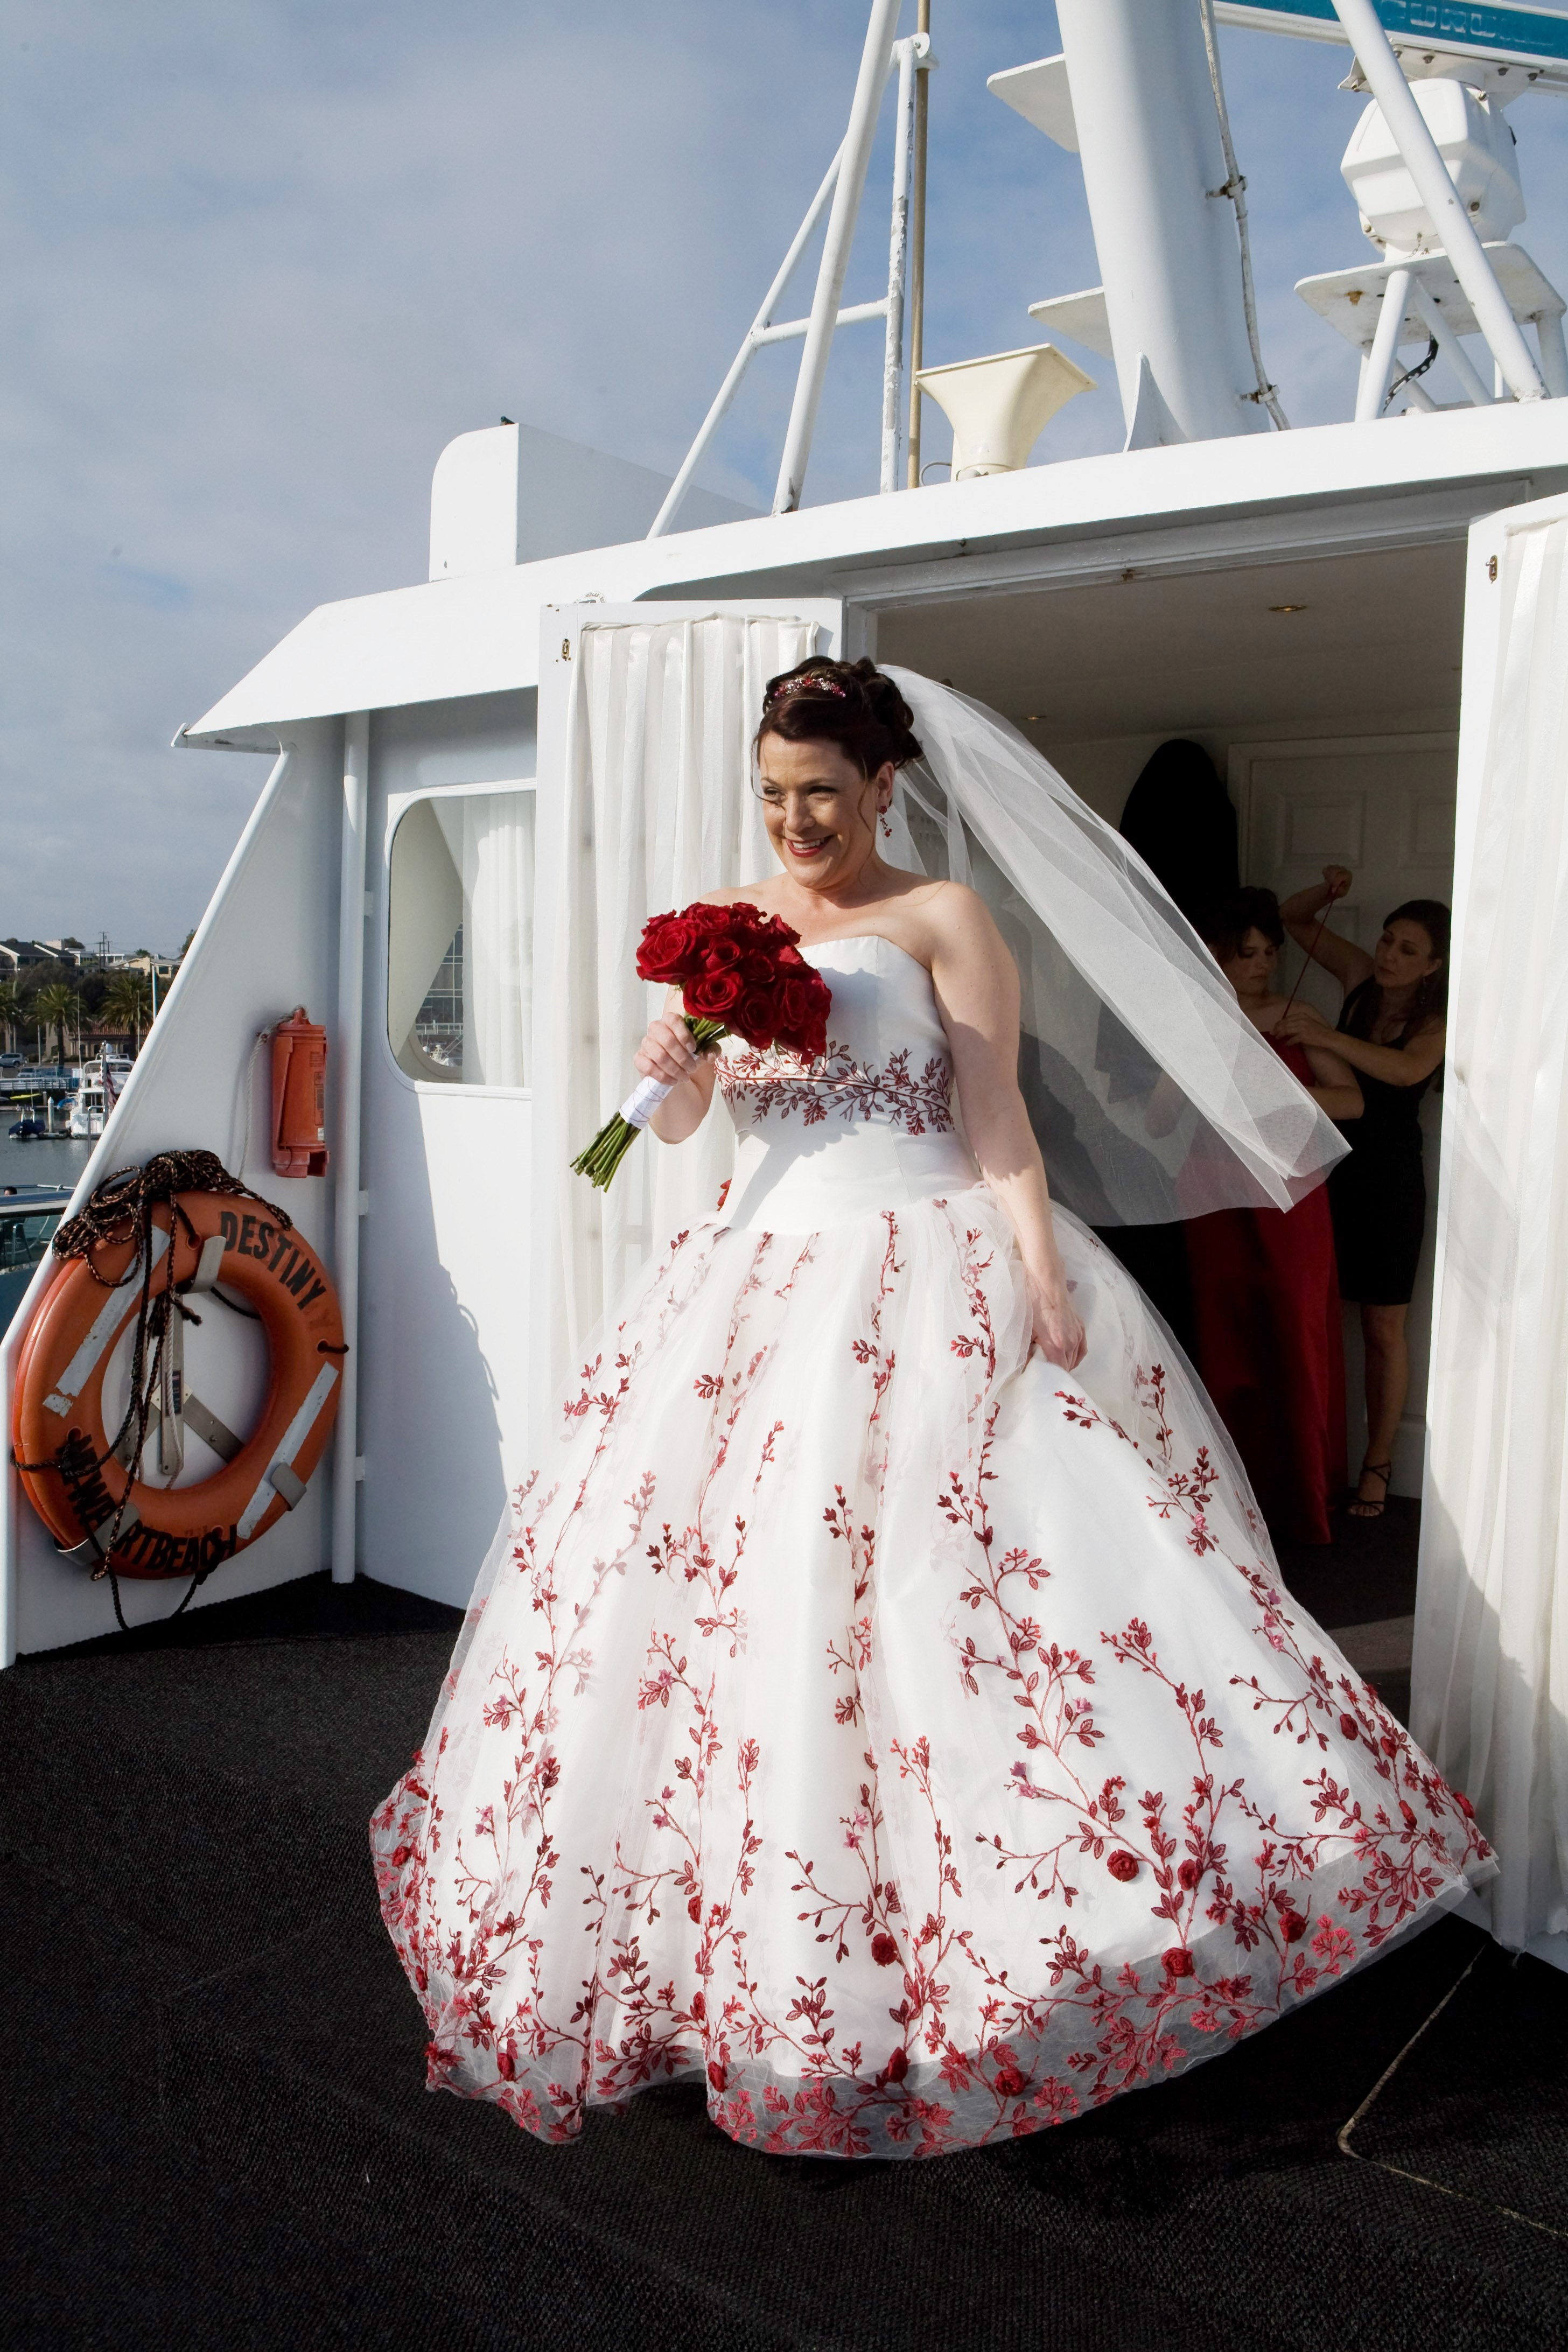 Danielle's Wedding Gown With Red